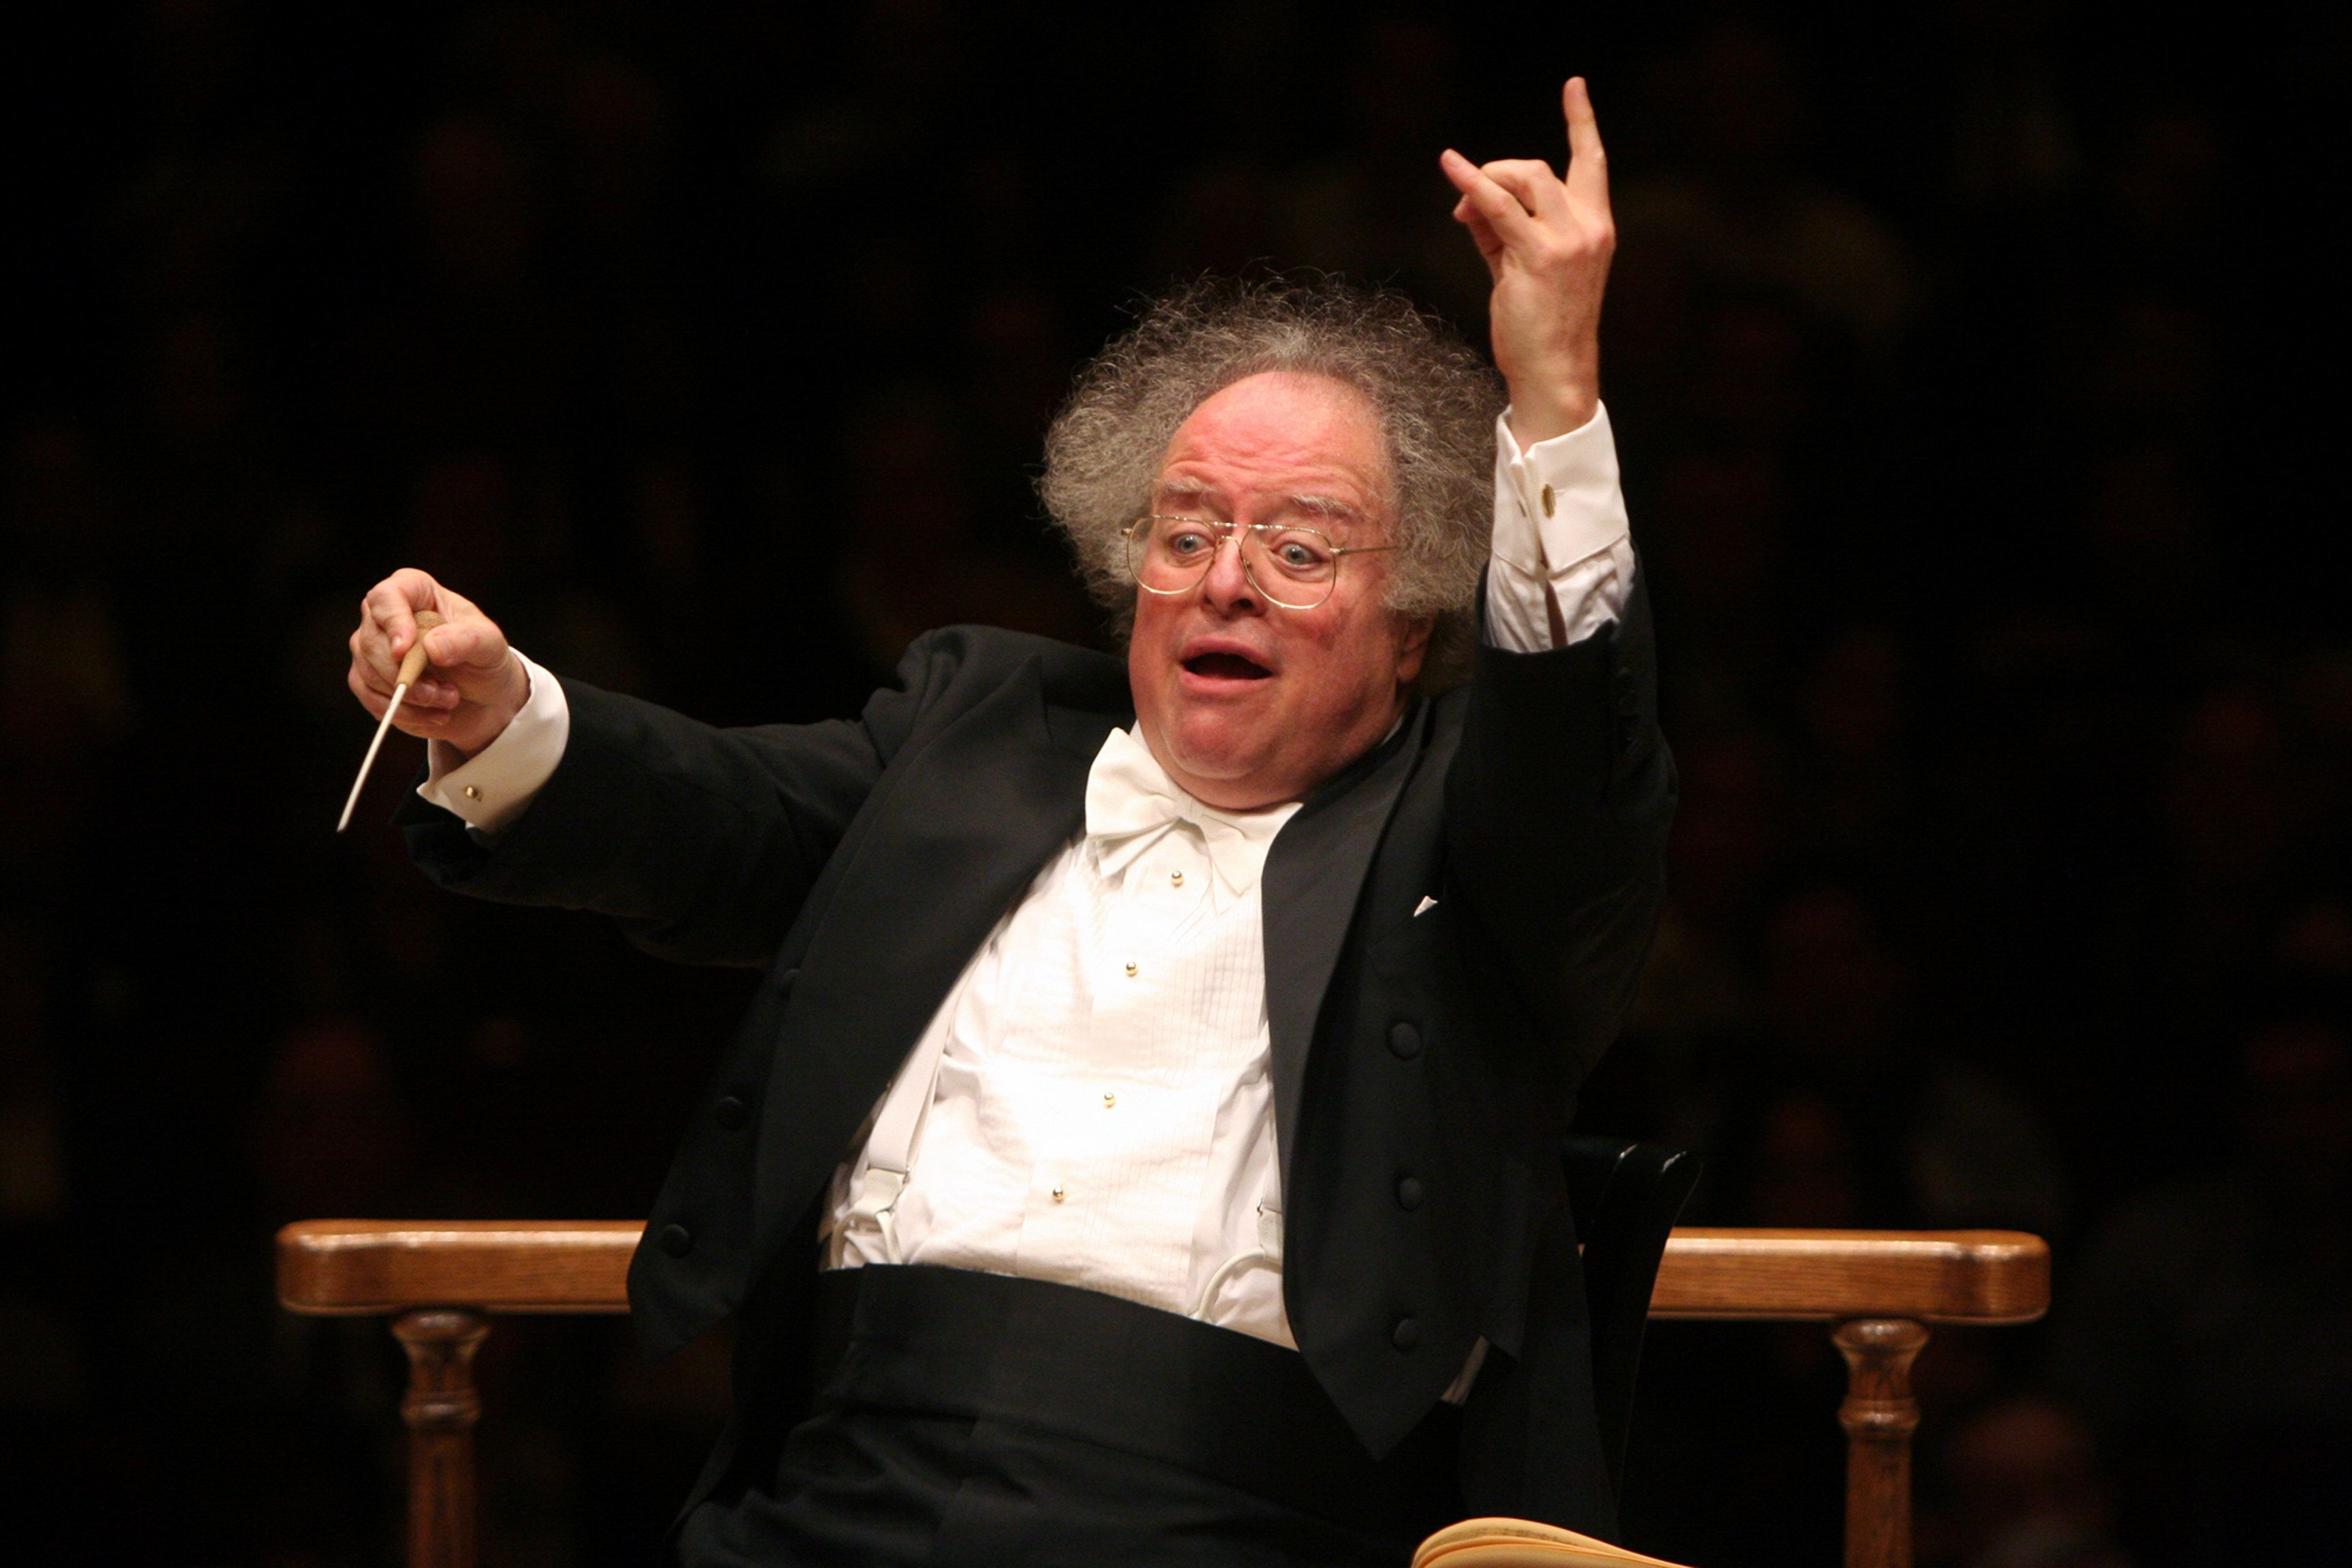 Conductor James Levine molested 15-year-old, claims Police report